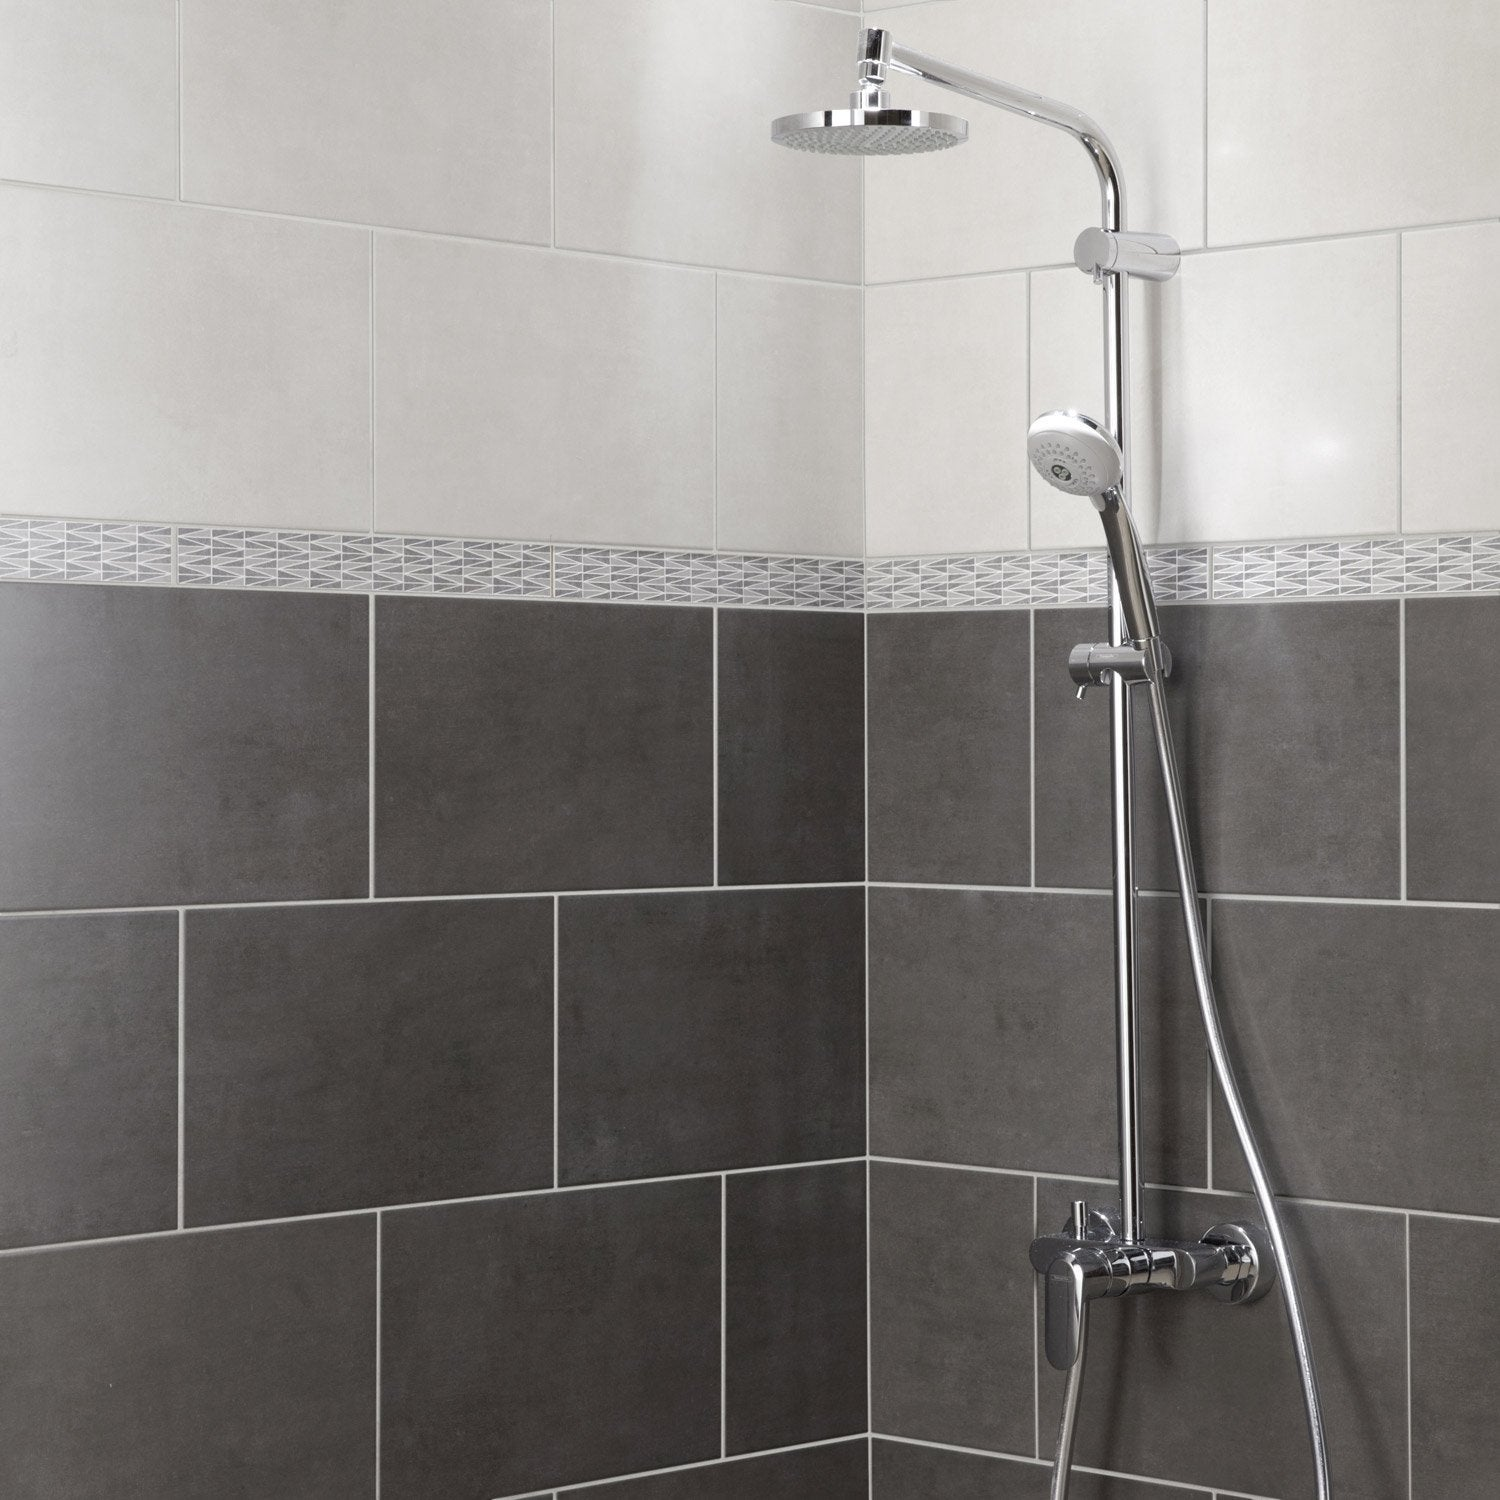 Fa ence mur anthracite smart x cm leroy merlin for Faience petit carreaux salle de bain